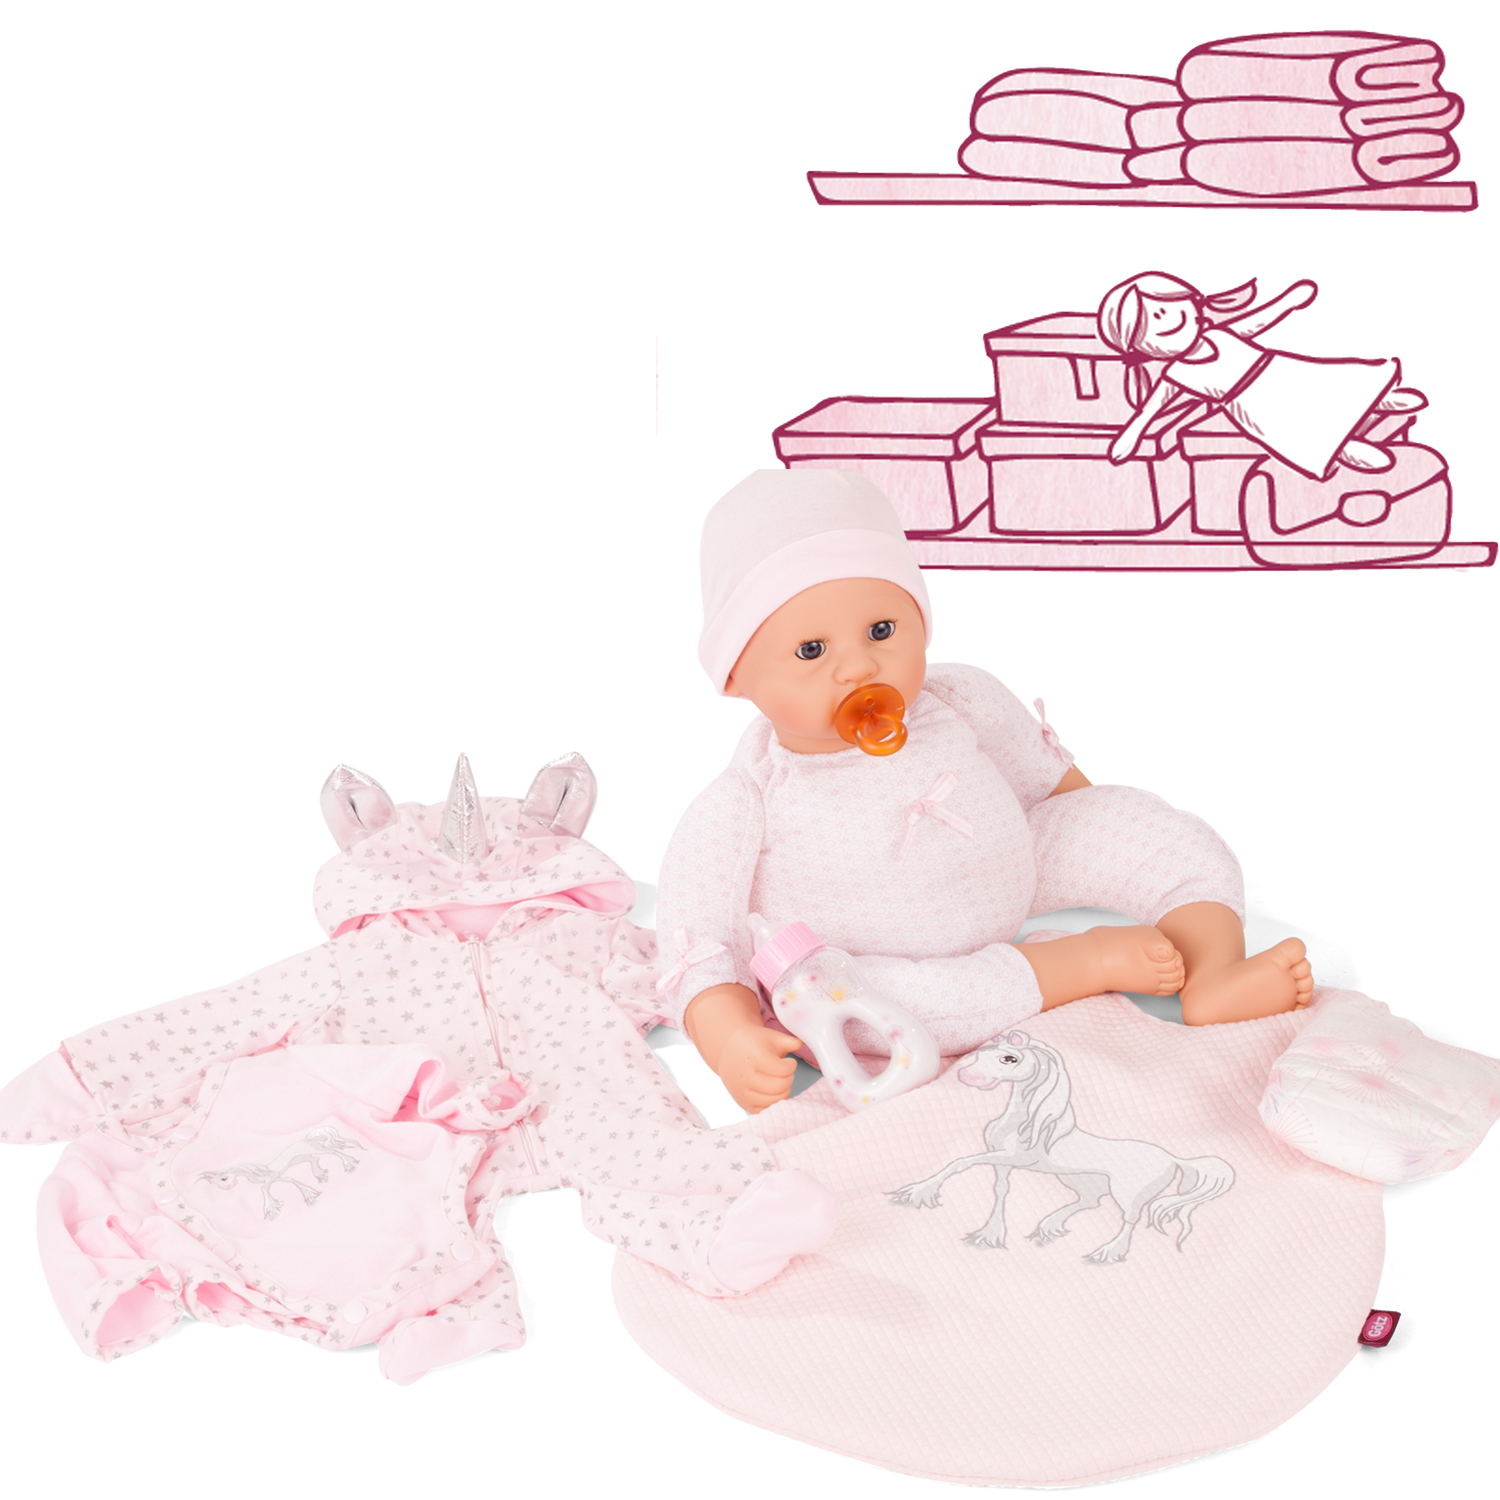 Gotz Pink Denim Outfit to fit Gotz Cookie or other 48cm Baby Dolls